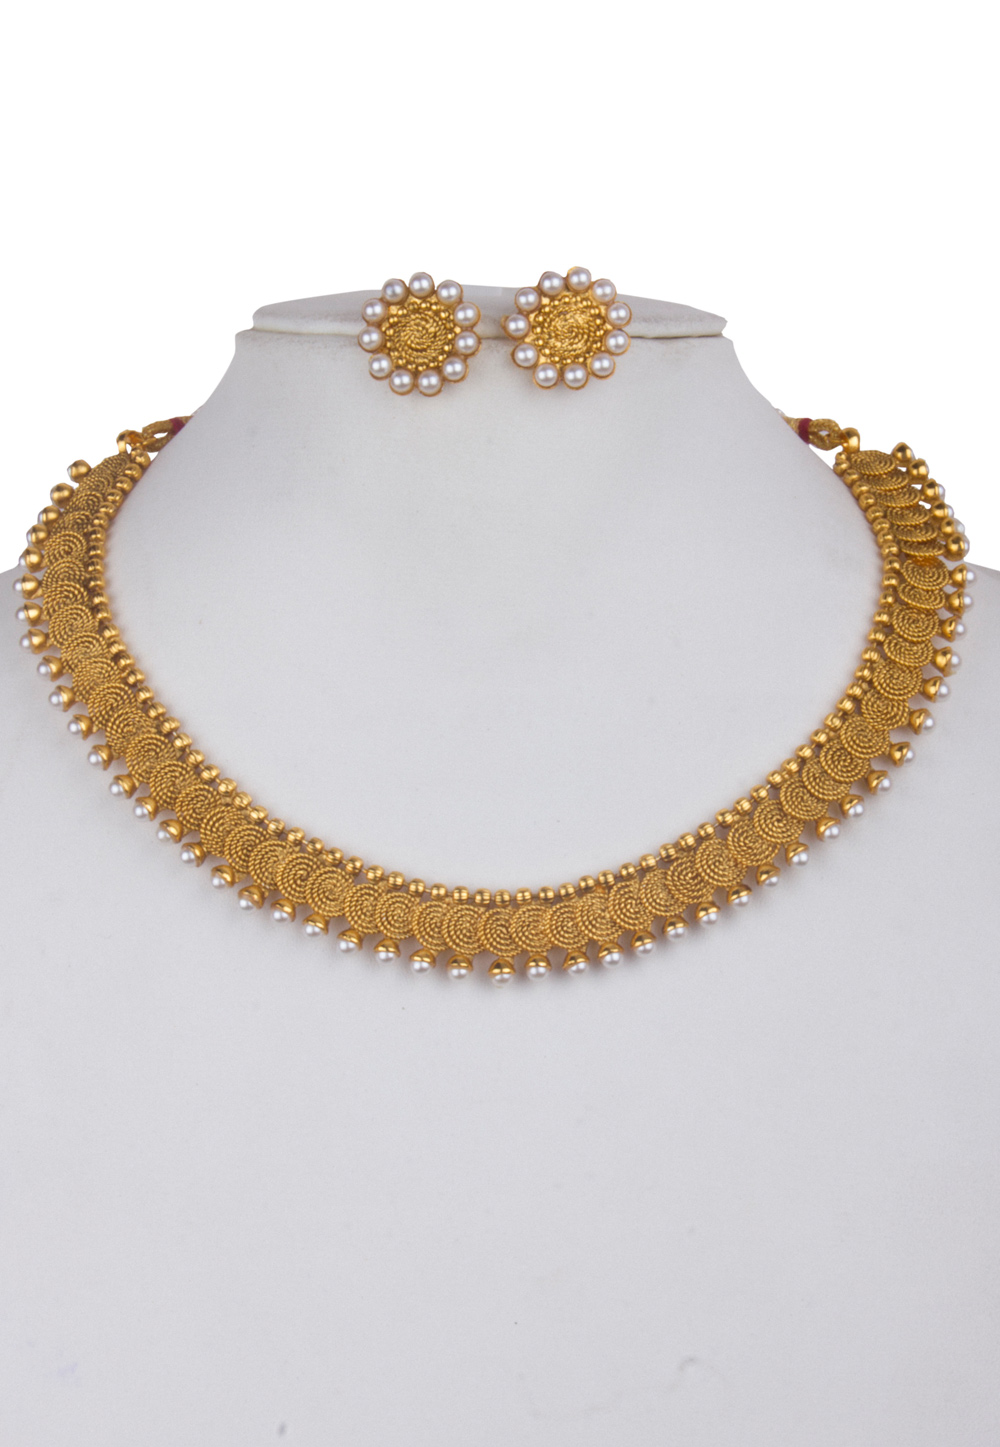 Golden Alloy Kundan Necklace With Earrings 156255